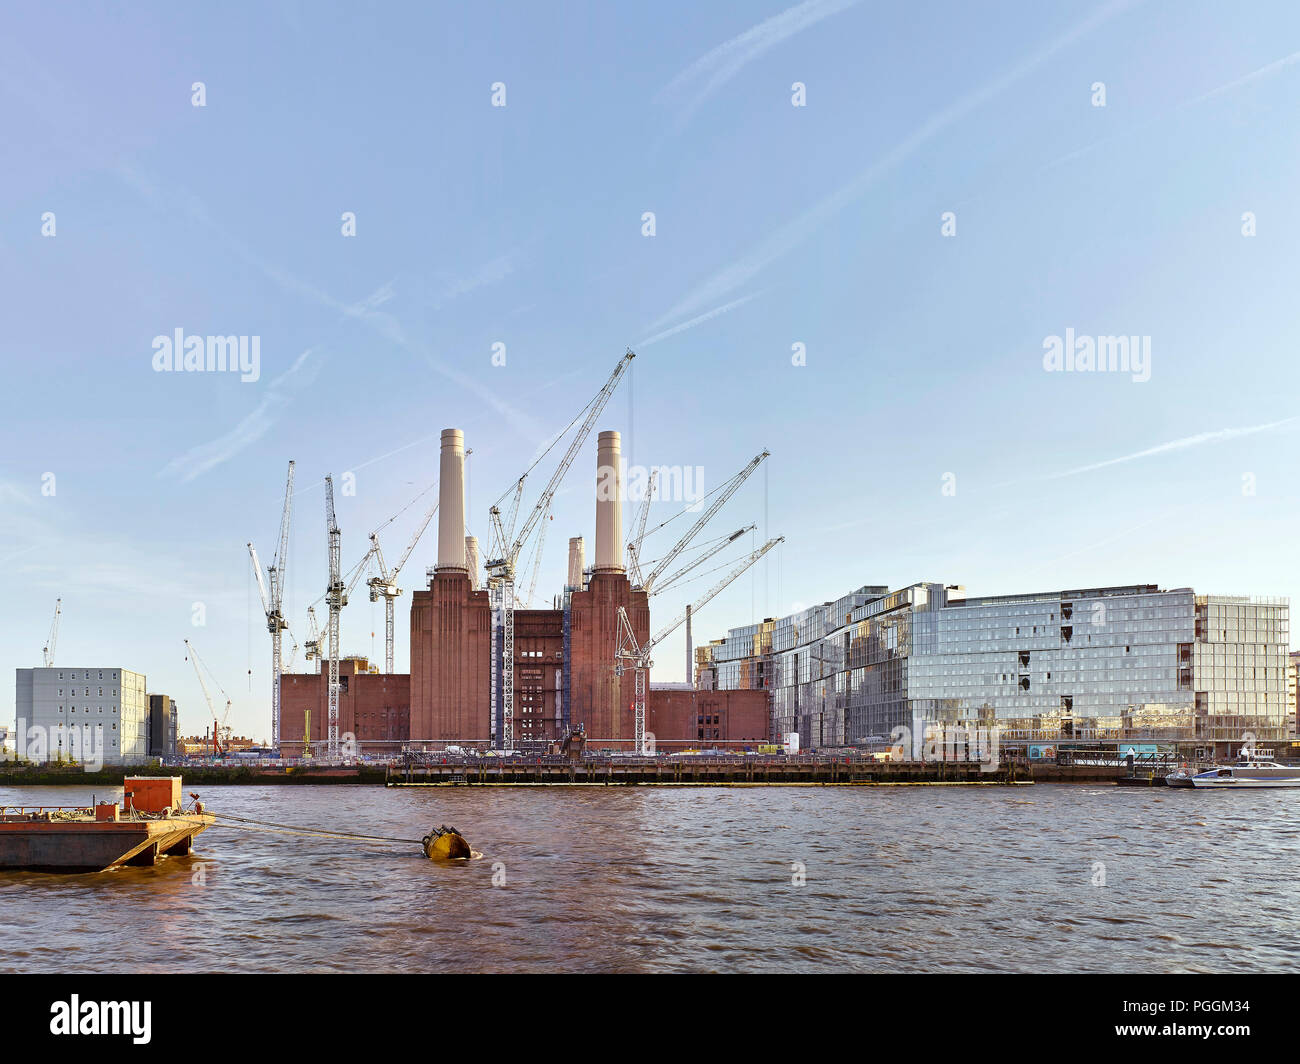 View from north with sunlight. Battersea Power Station, under construction, London, United Kingdom. Architect: Sir Giles Gilbert Scott, 1953. - Stock Image